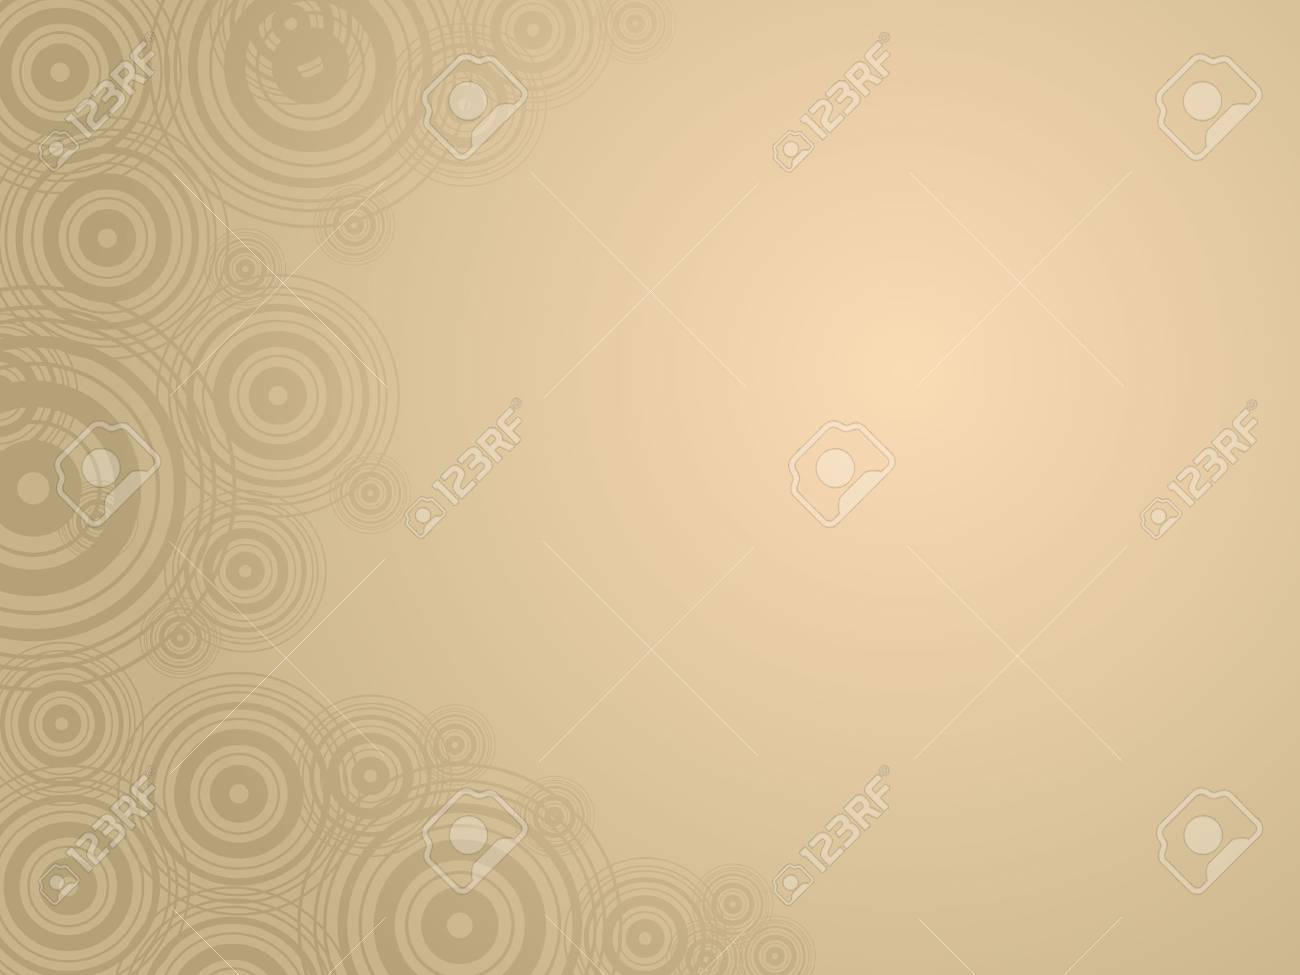 Abstract background design. Available in jpeg and eps8 formats. - 5548576